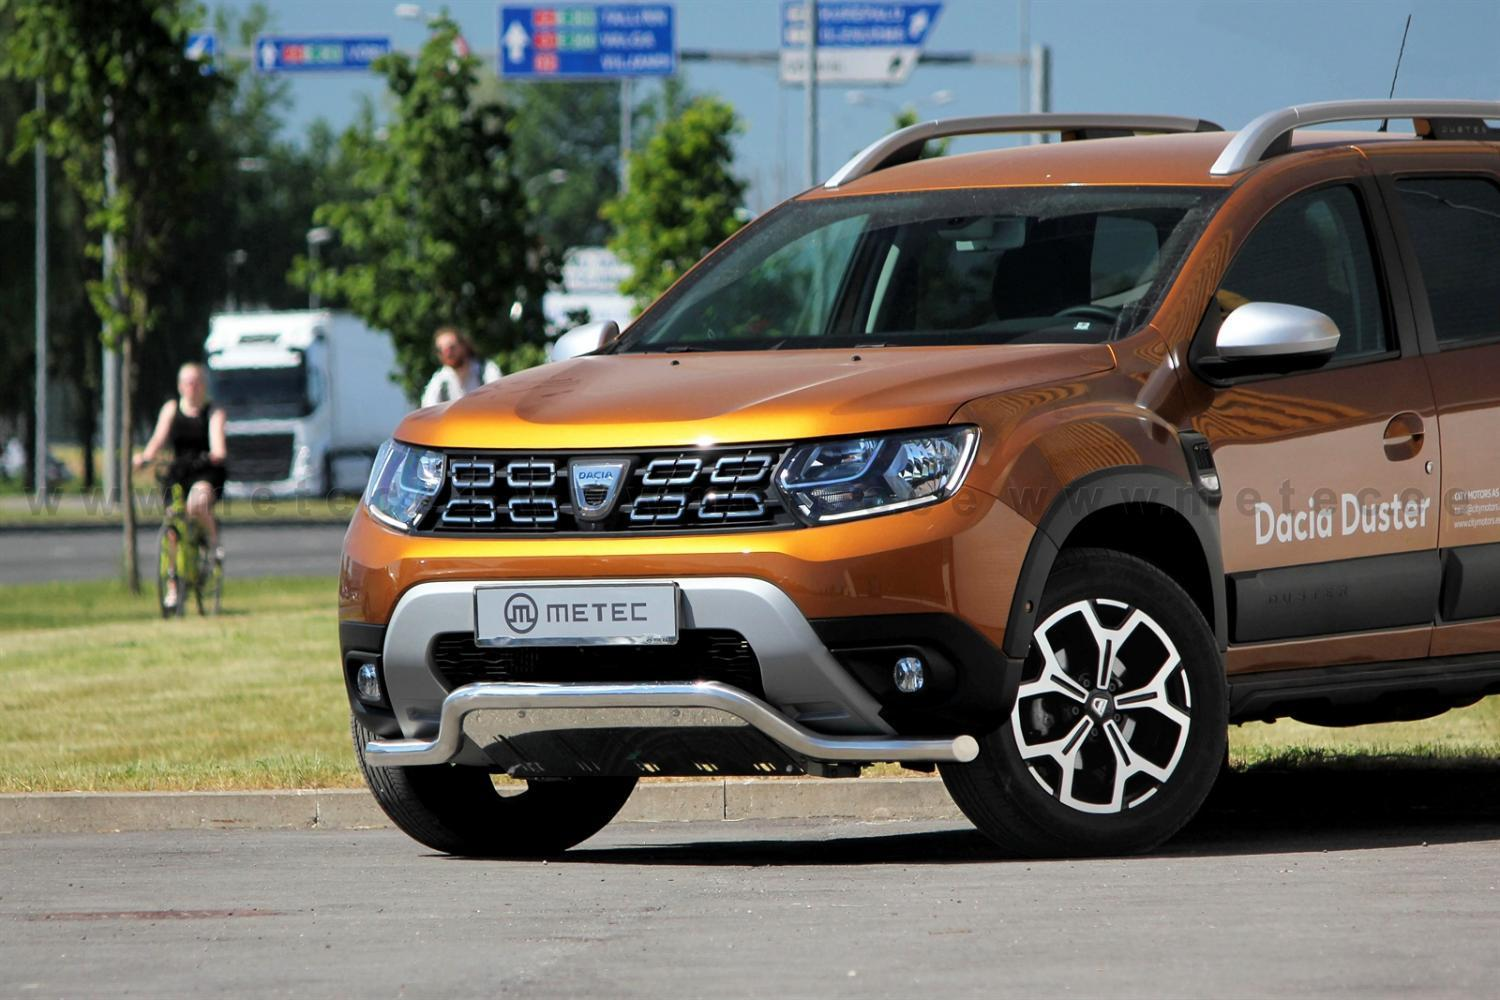 dacia duster cityguard 2018 tuning parts to new duster. Black Bedroom Furniture Sets. Home Design Ideas